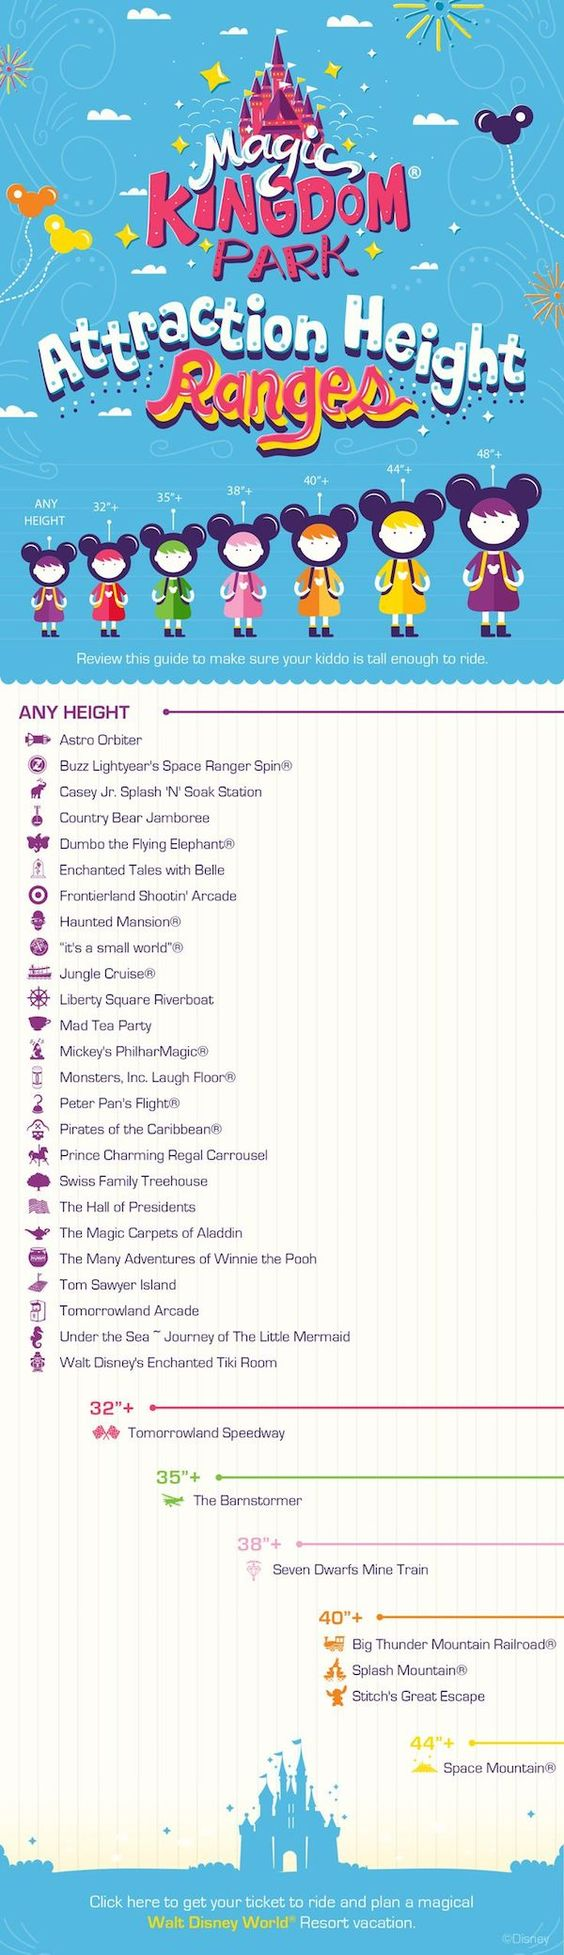 #DisneyKids: Height Requirements for Attractions at Walt Disney World Resort